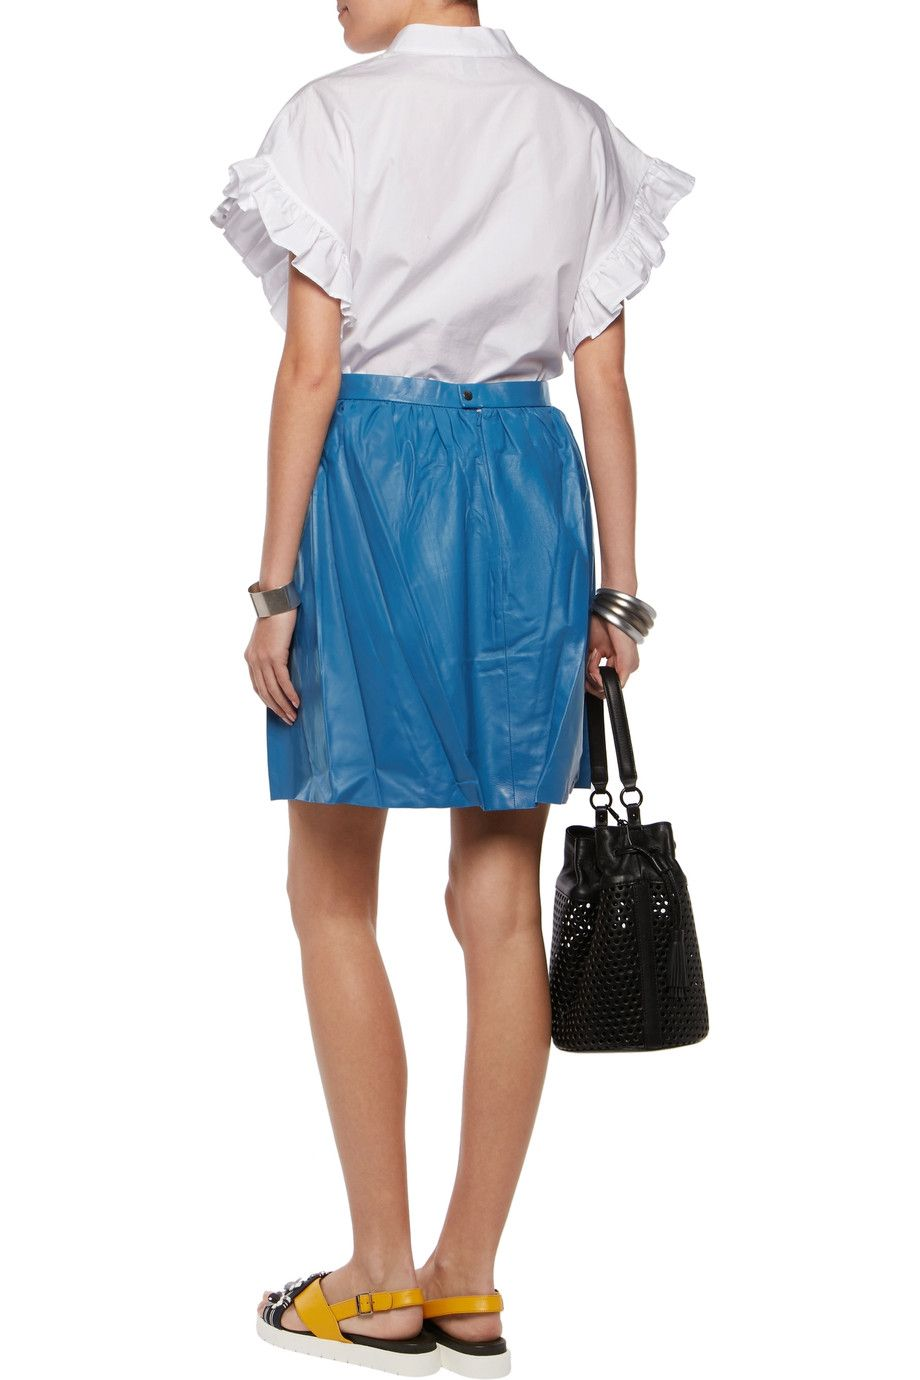 Shop on-sale Mother of Pearl Spirea gathered blue leather mini skirt.  Browse other